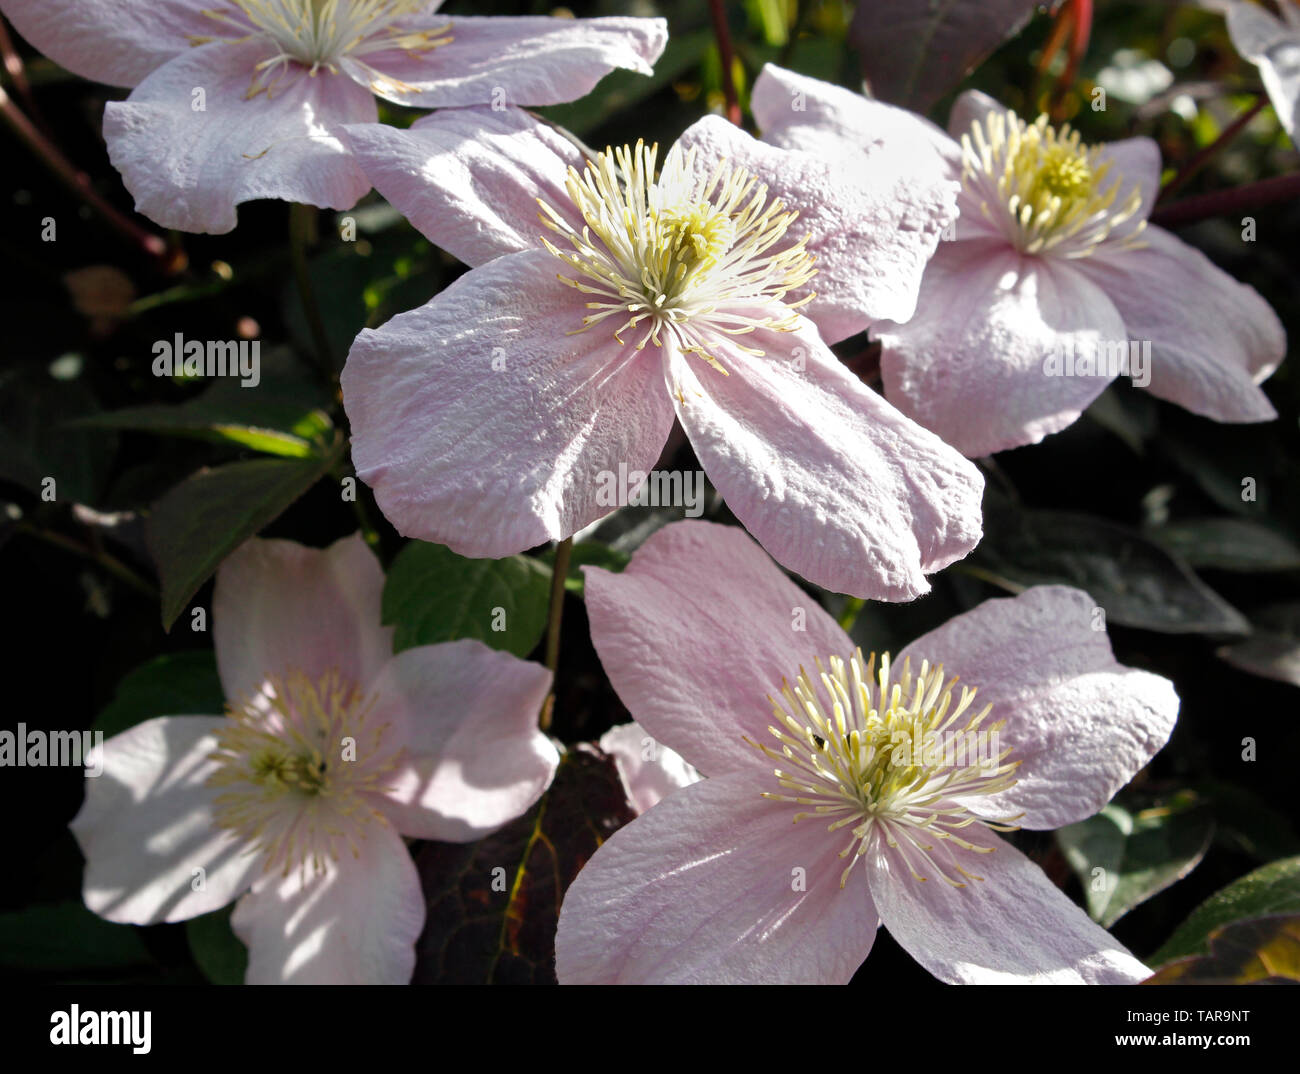 Close up Clematis Montana   'Fragrant Spring' flowers - Stock Image